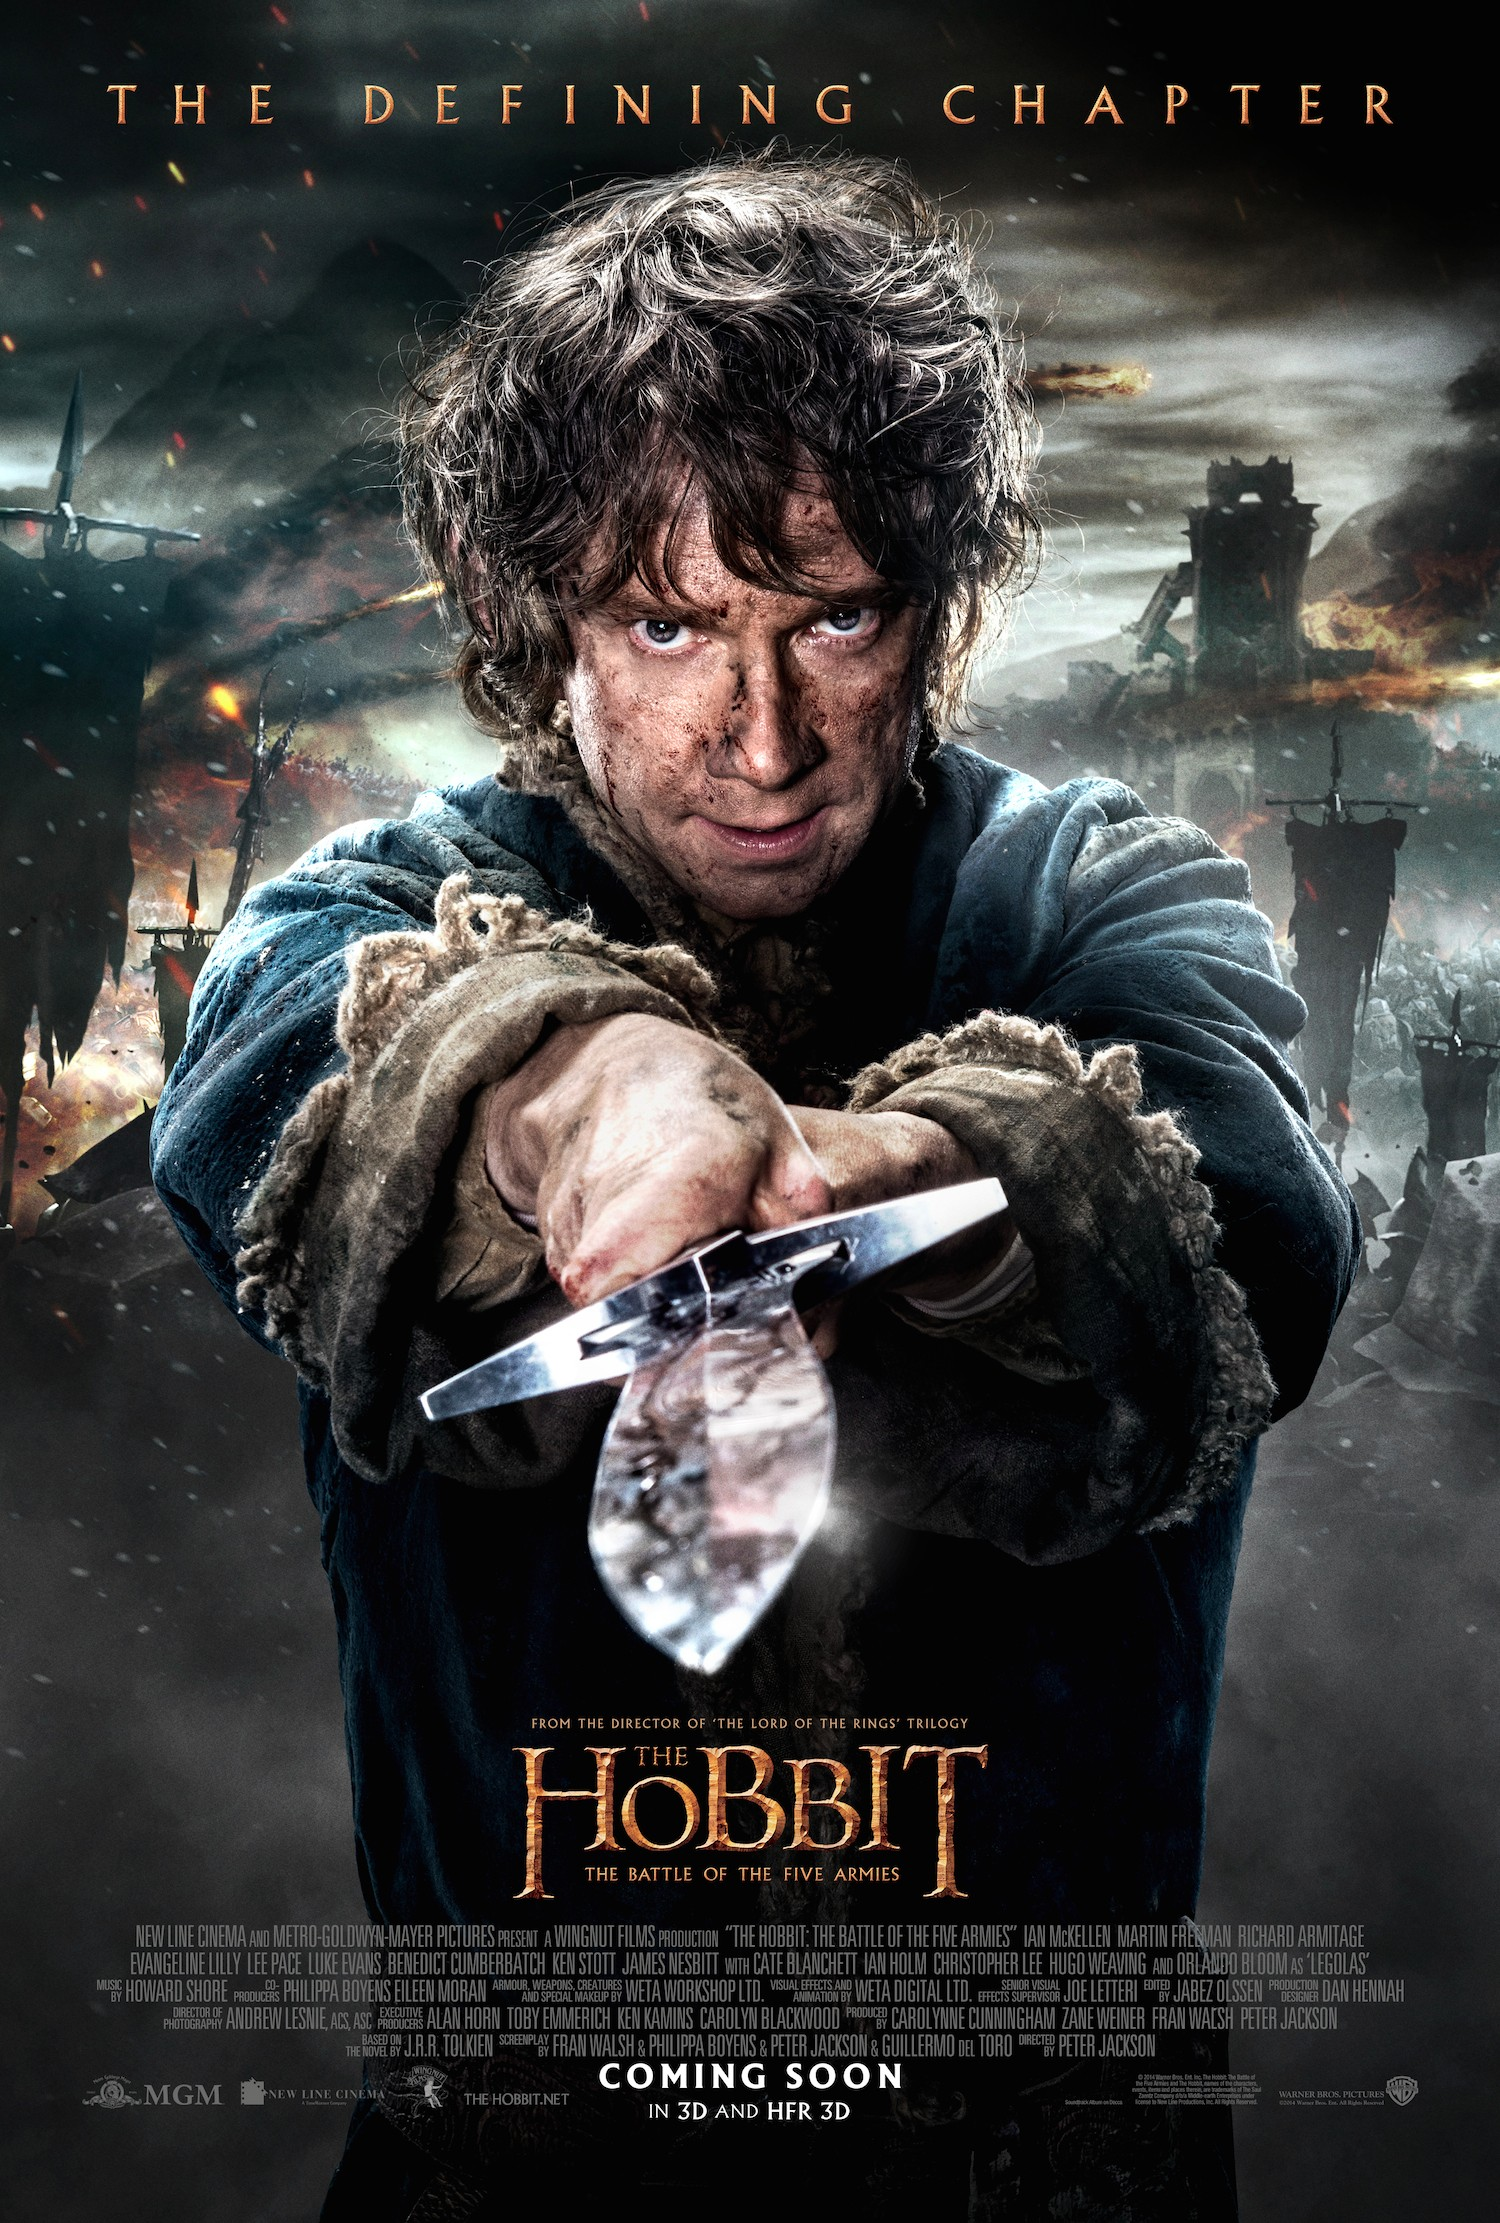 Pointed poster for The Hobbit: The Battle of the Five Armies